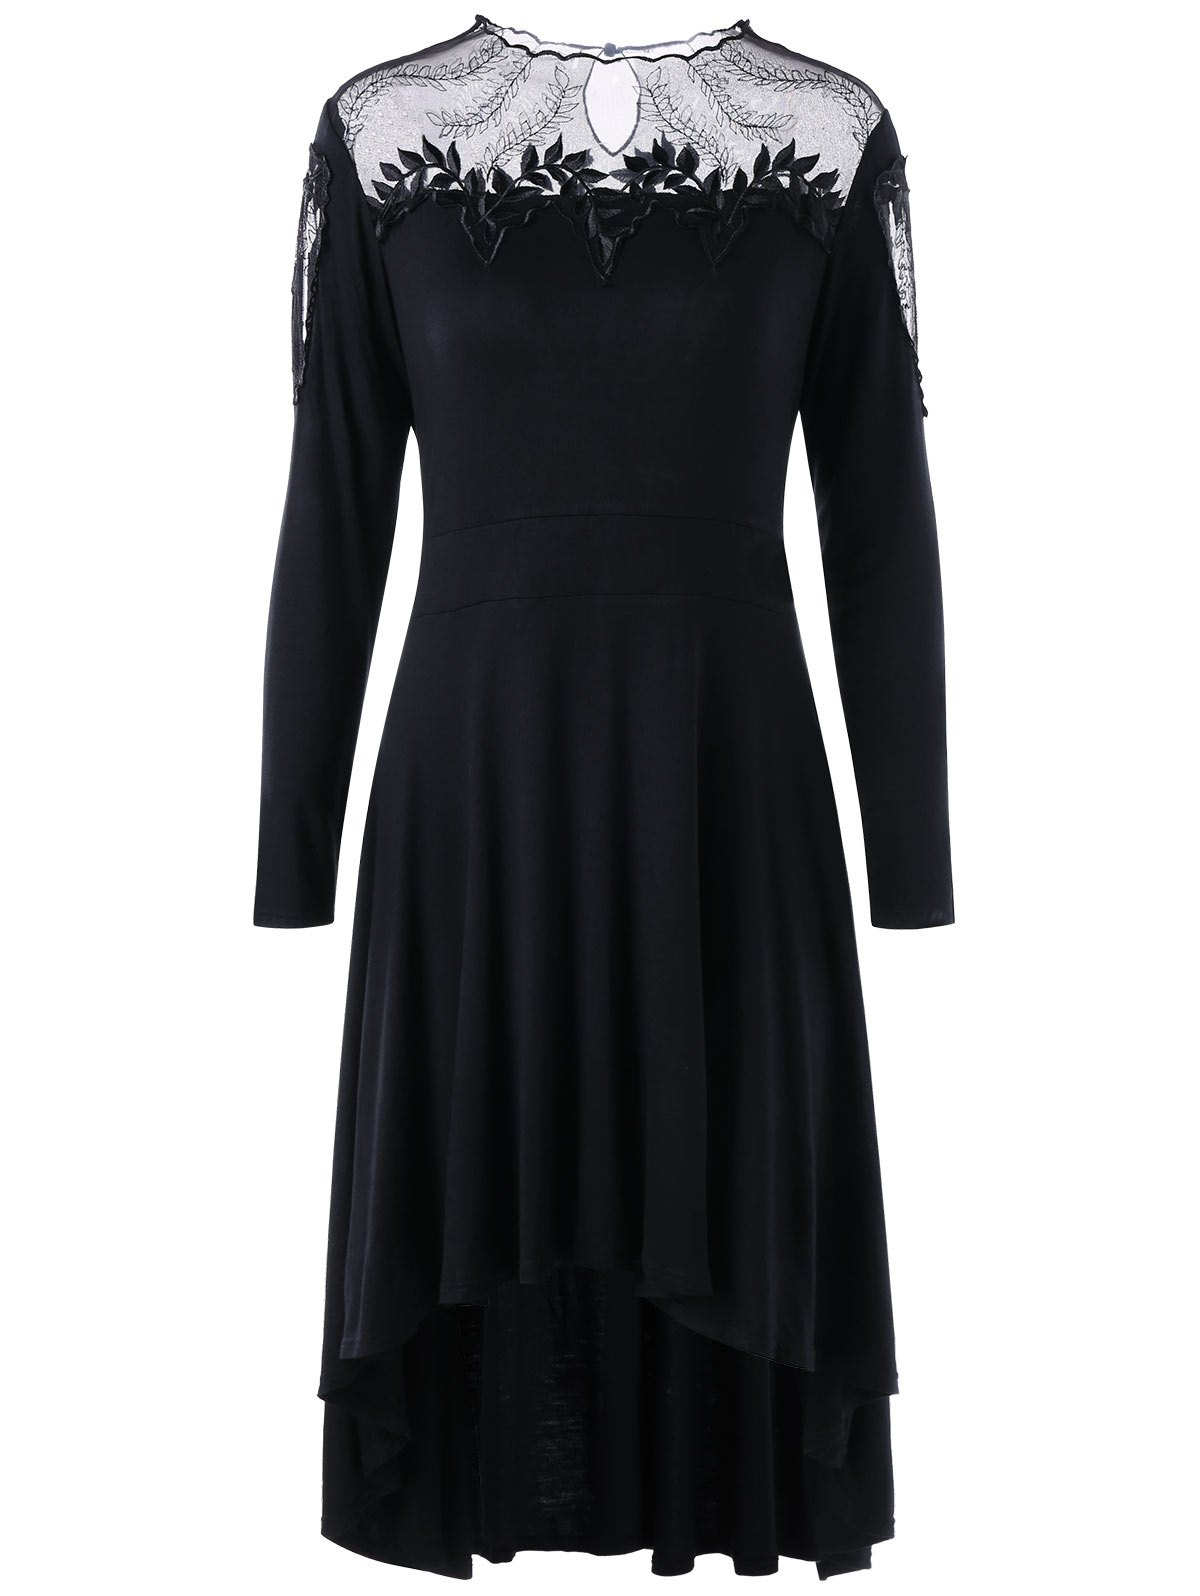 New Plus Size Sheer Appliqued High Low Dress